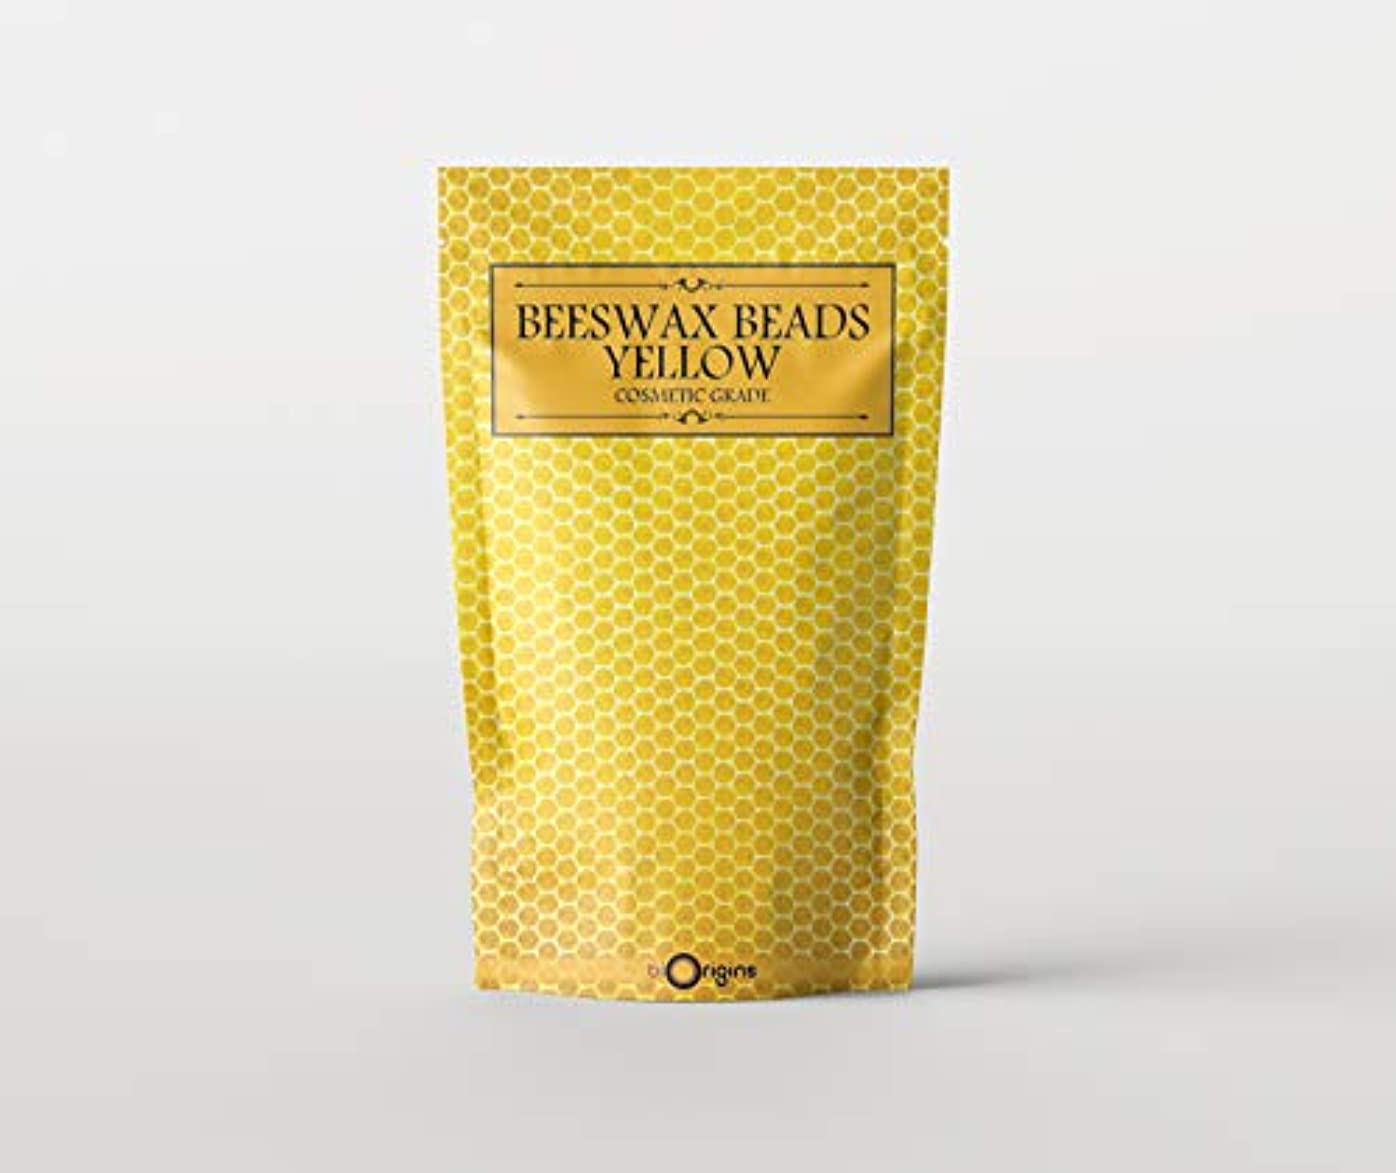 数値できればなだめるBeeswax Beads Yellow - Cosmetic Grade - 1Kg